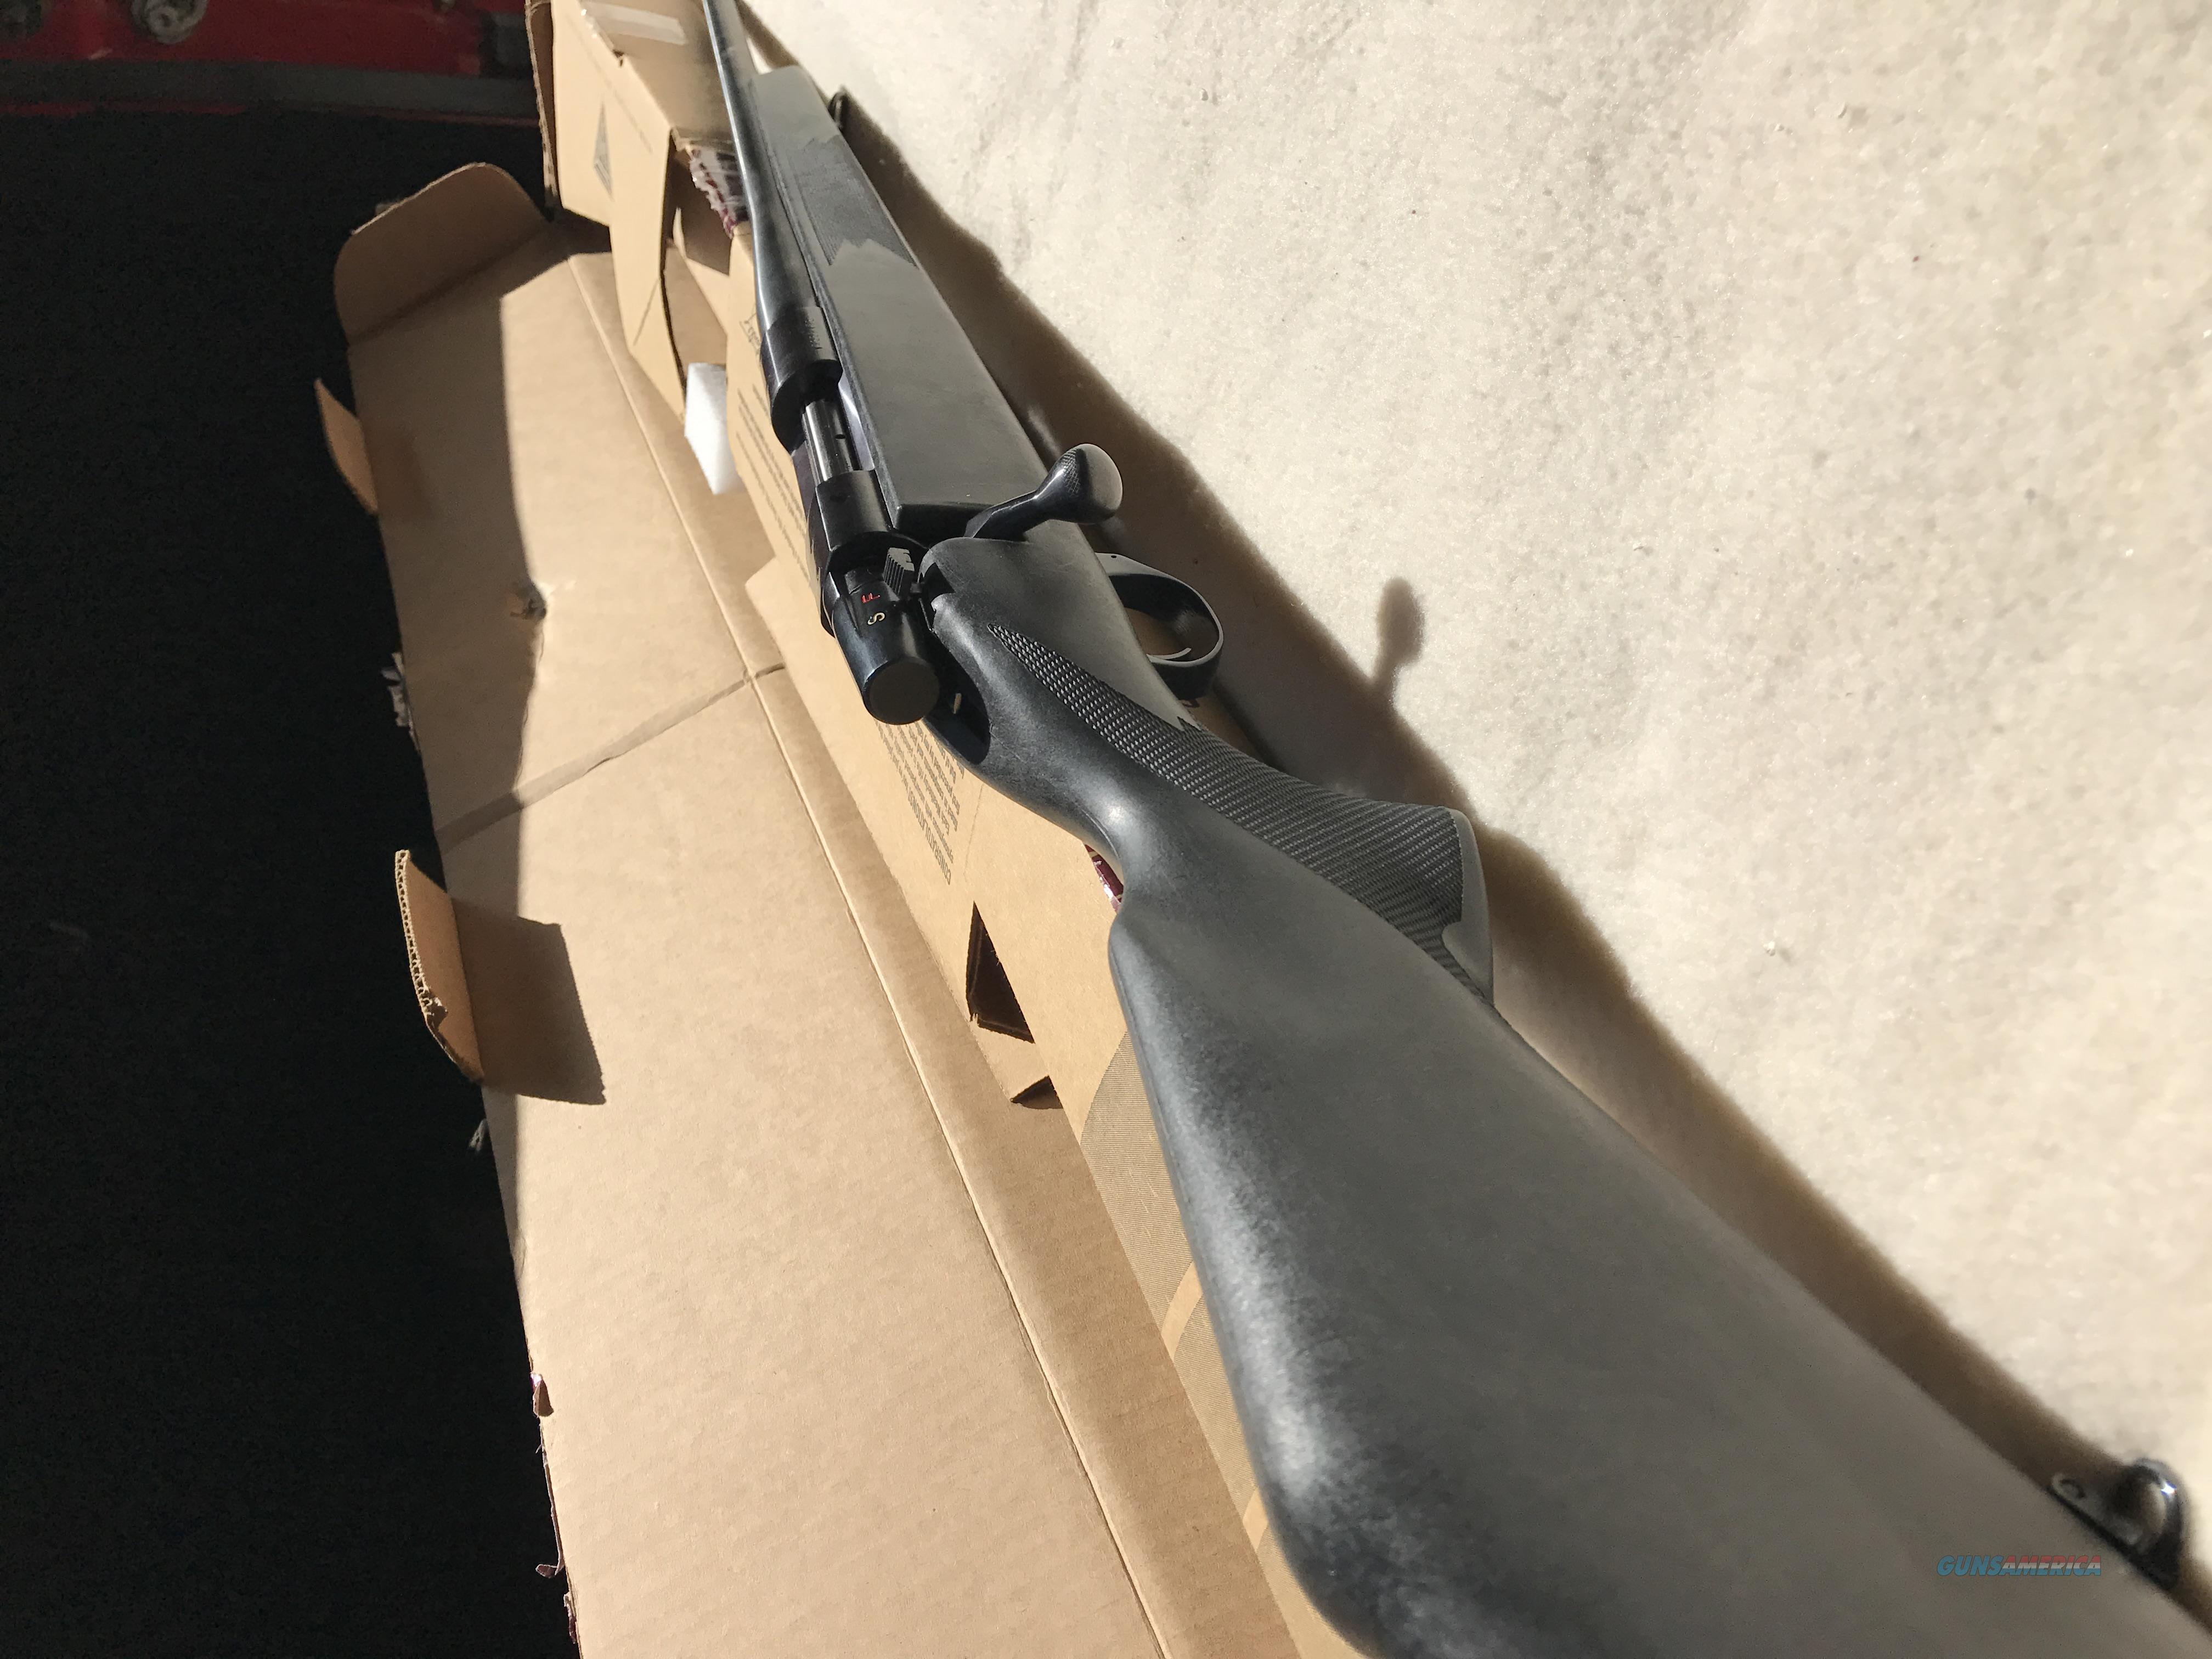 Weatherby Vangaurd 243 Win Black Synthetic Stock  Guns > Rifles > Weatherby Rifles > Sporting